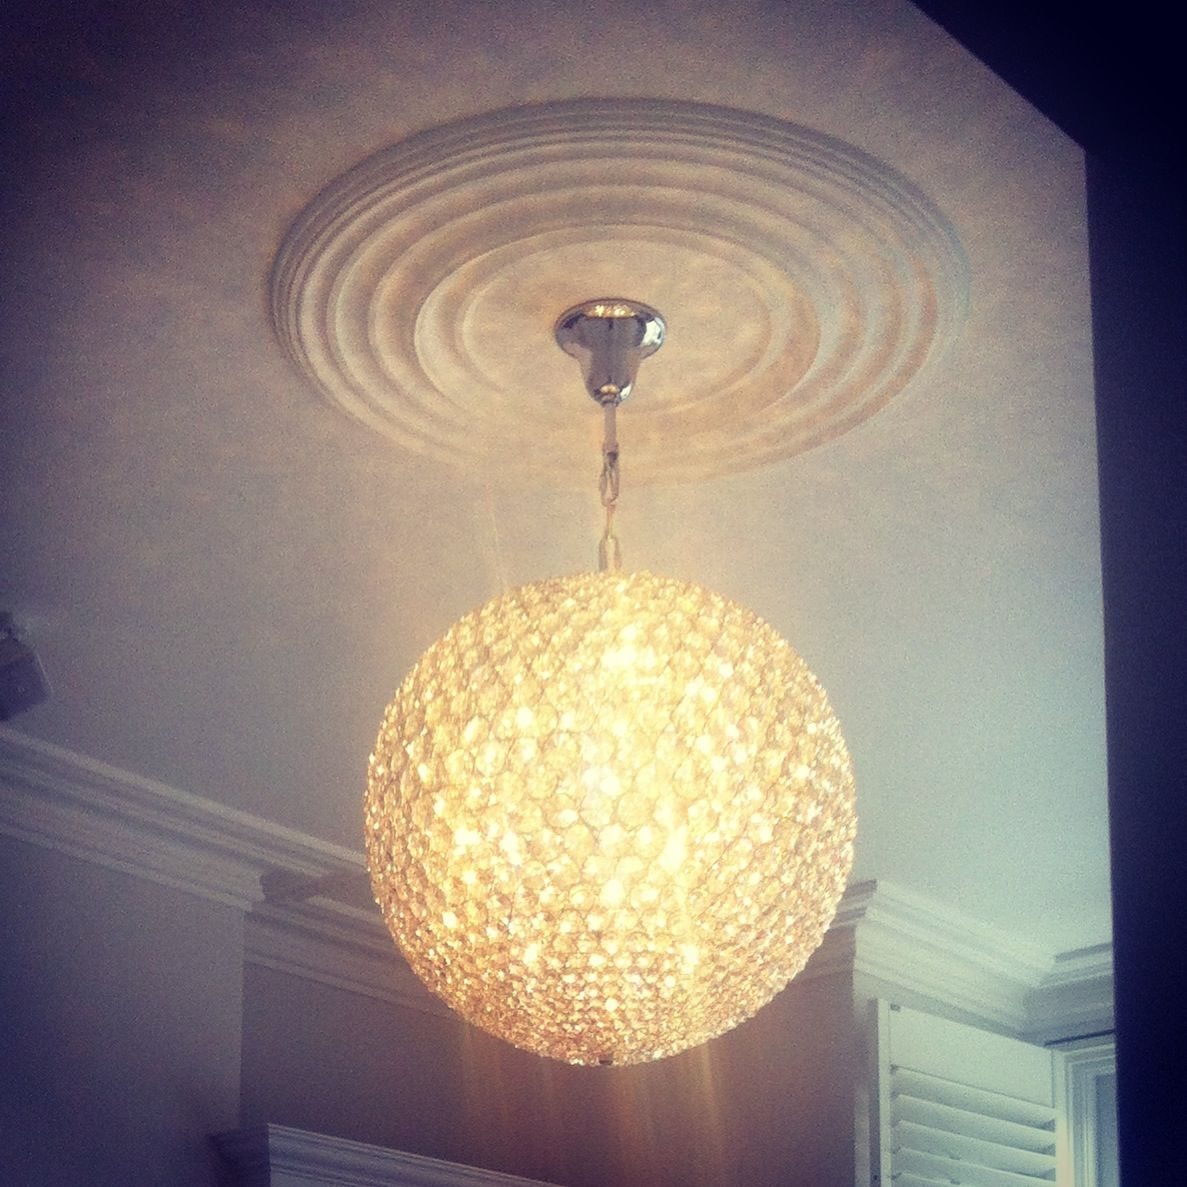 Chandalier-crystals, beautiful | Light up the castle | Pinterest ...